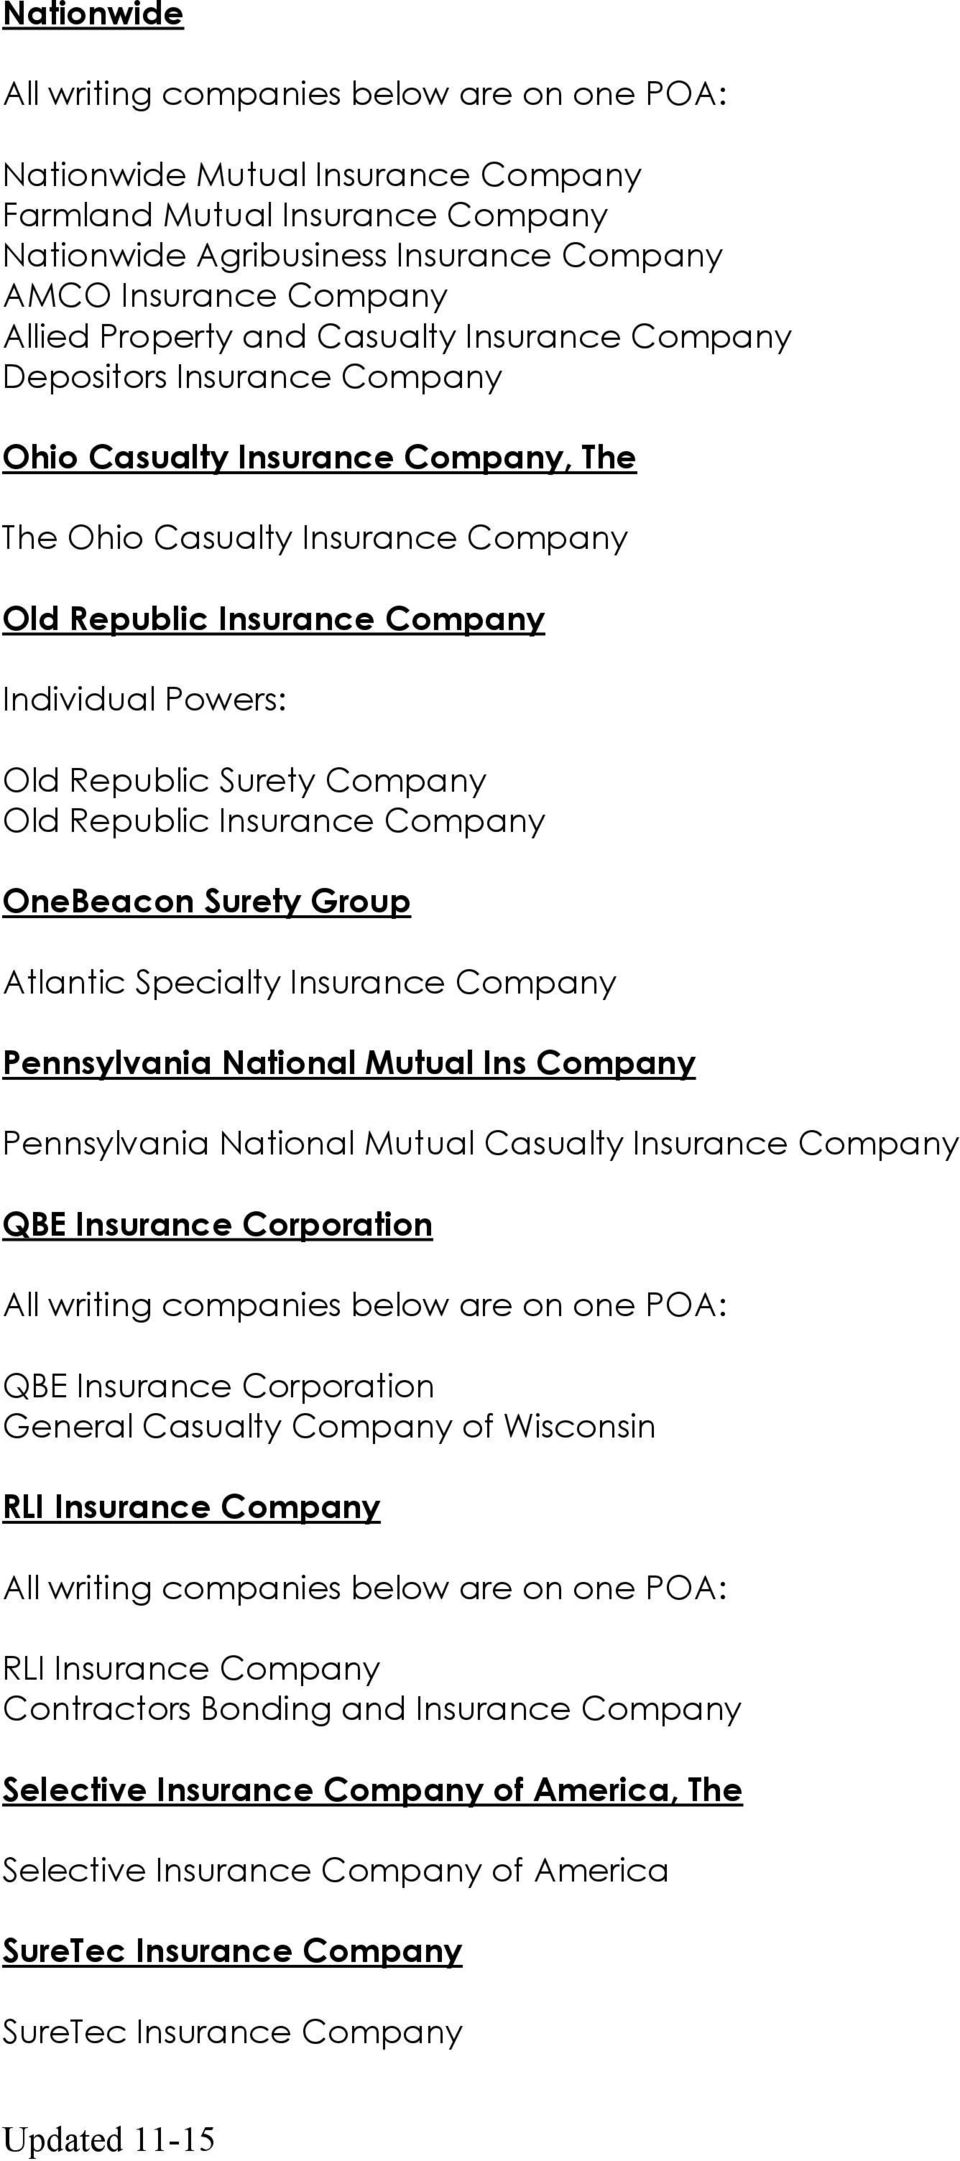 OneBeacon Surety Group Atlantic Specialty Insurance Company Pennsylvania National Mutual Ins Company Pennsylvania National Mutual Casualty Insurance Company QBE Insurance Corporation QBE Insurance